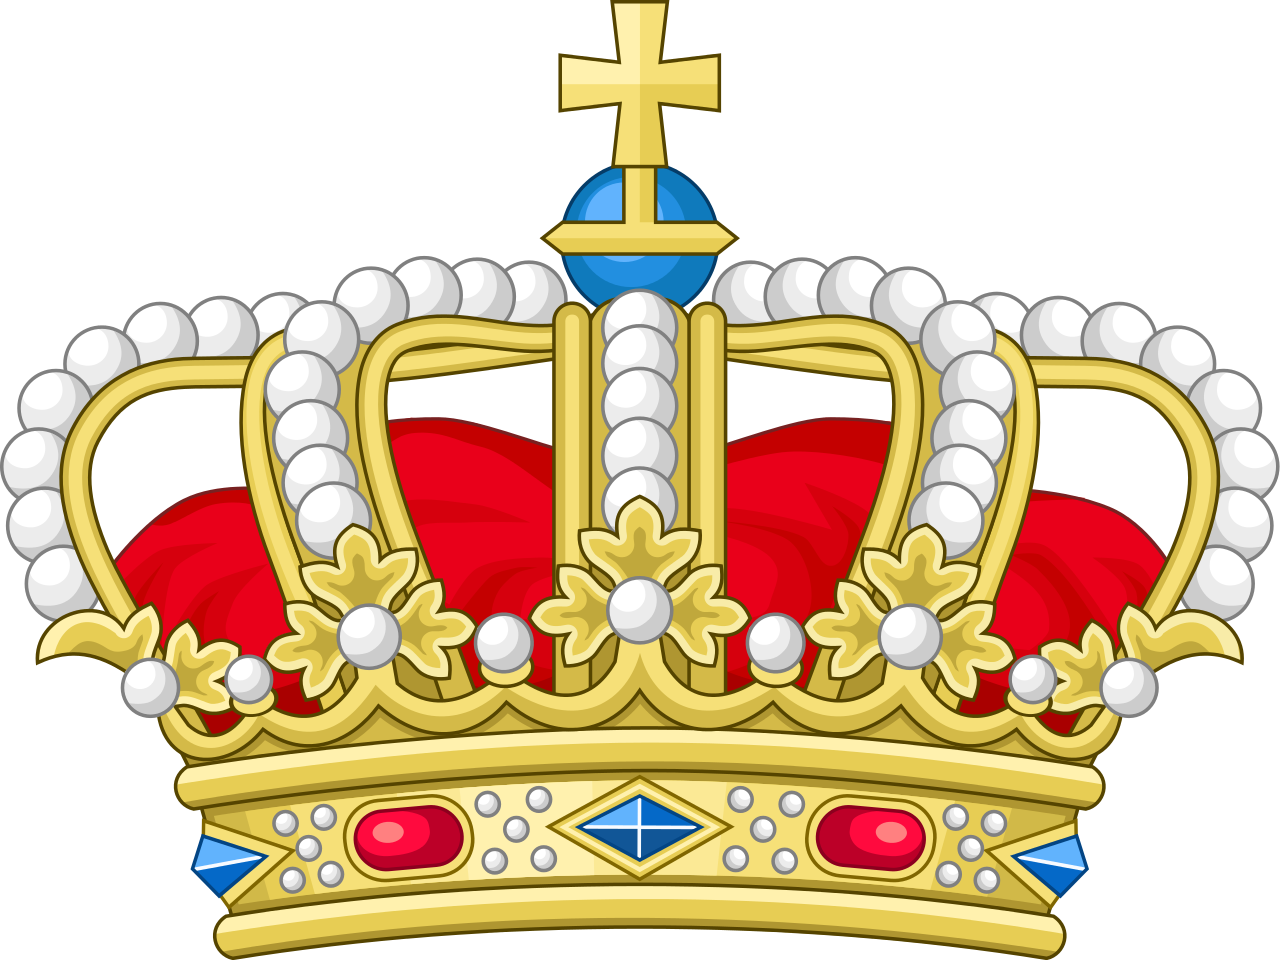 Crown clip art royal crown. File of belgium heraldic